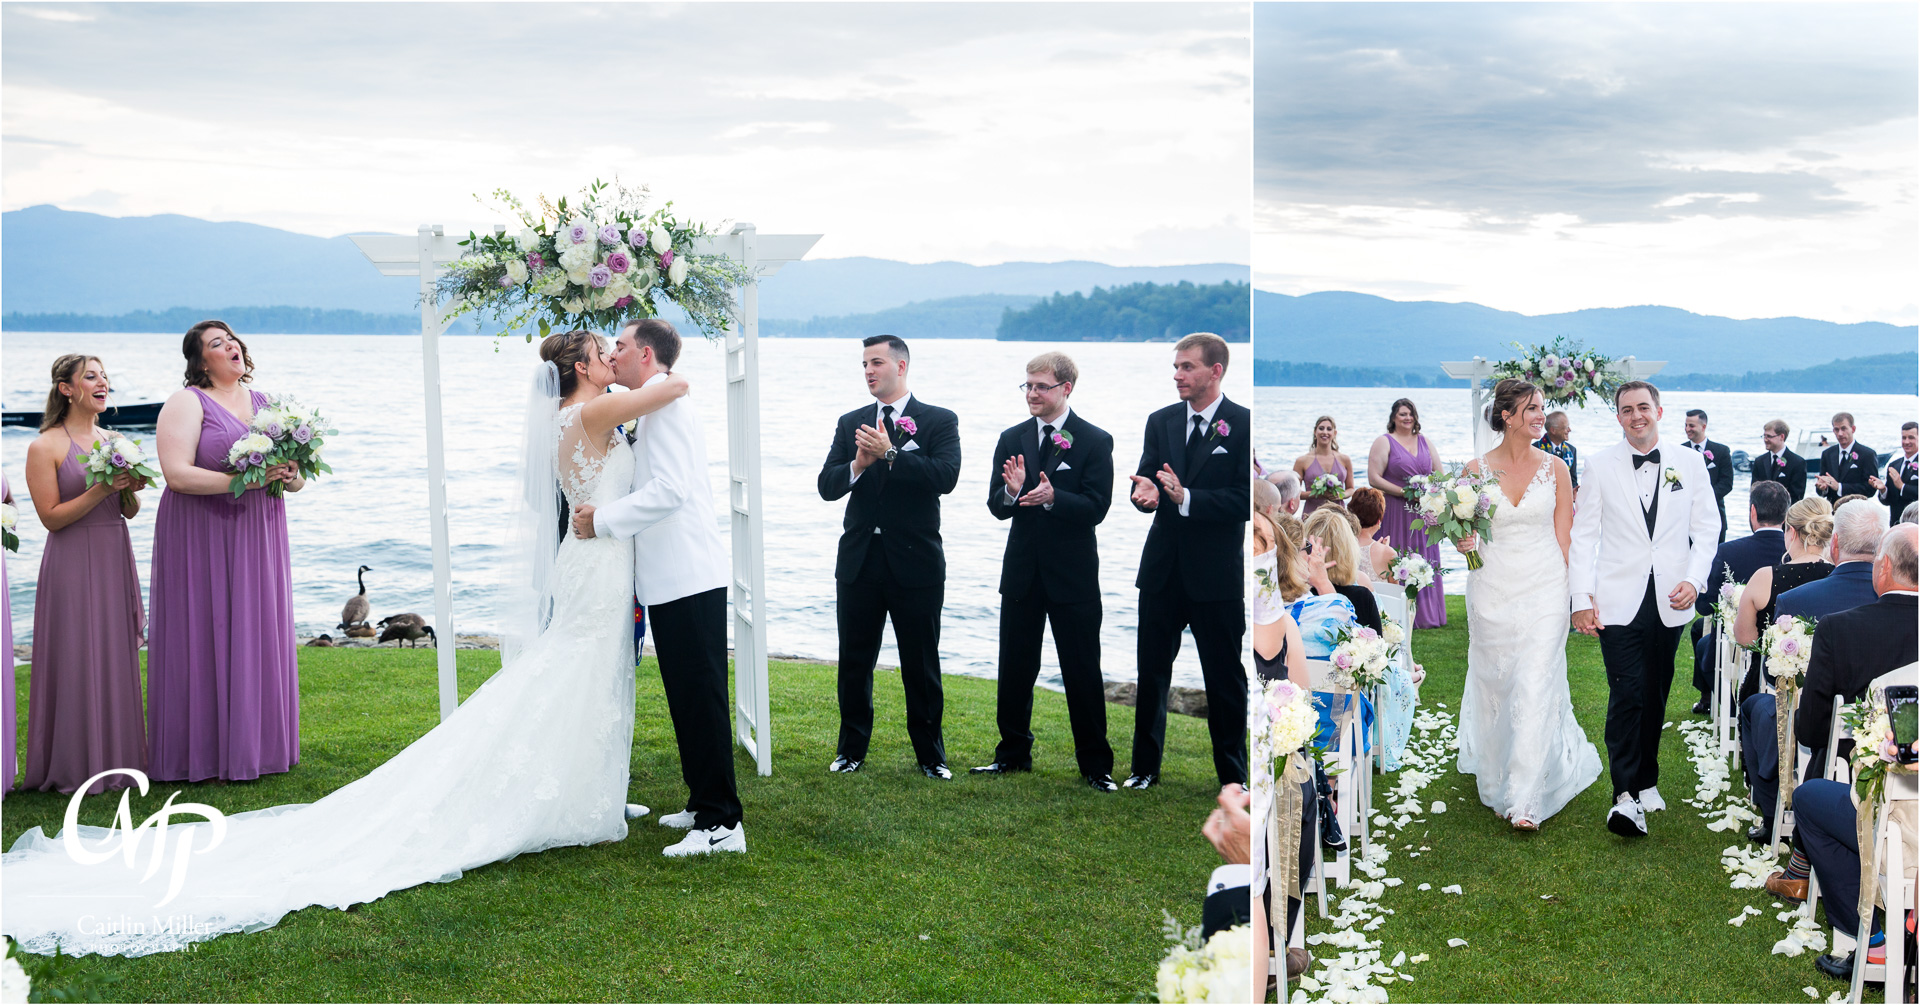 sale-14.jpg from Kendall and Chris's Lake George wedding at the Inn at Erlowest by Saratoga Wedding Photographer Caitlin Miller Photography. Lake George Wedding Photographer. Adirondack wedding photographer. Albany wedding photographer. Lake Placid Wedding Photographer. Saratoga Wedding Photographer